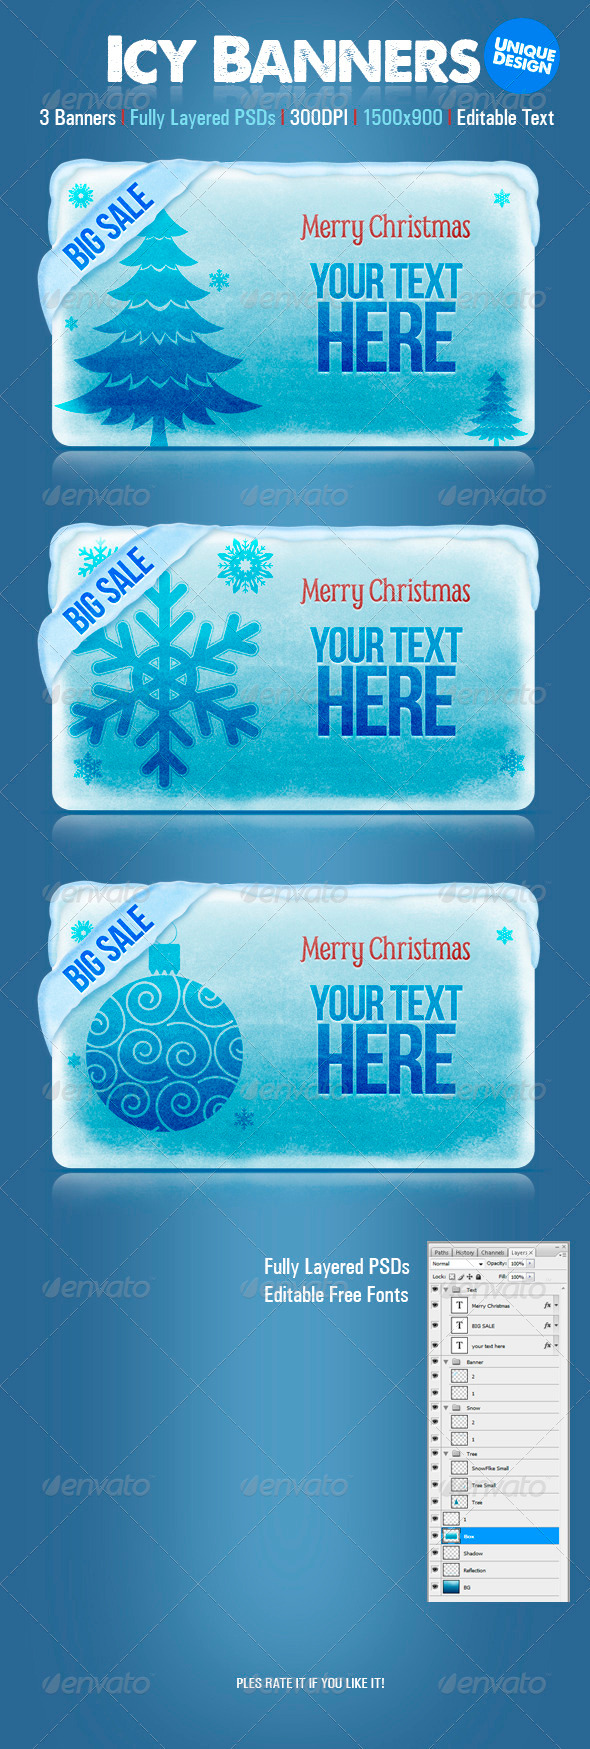 Icy Banners - Banners & Ads Web Elements